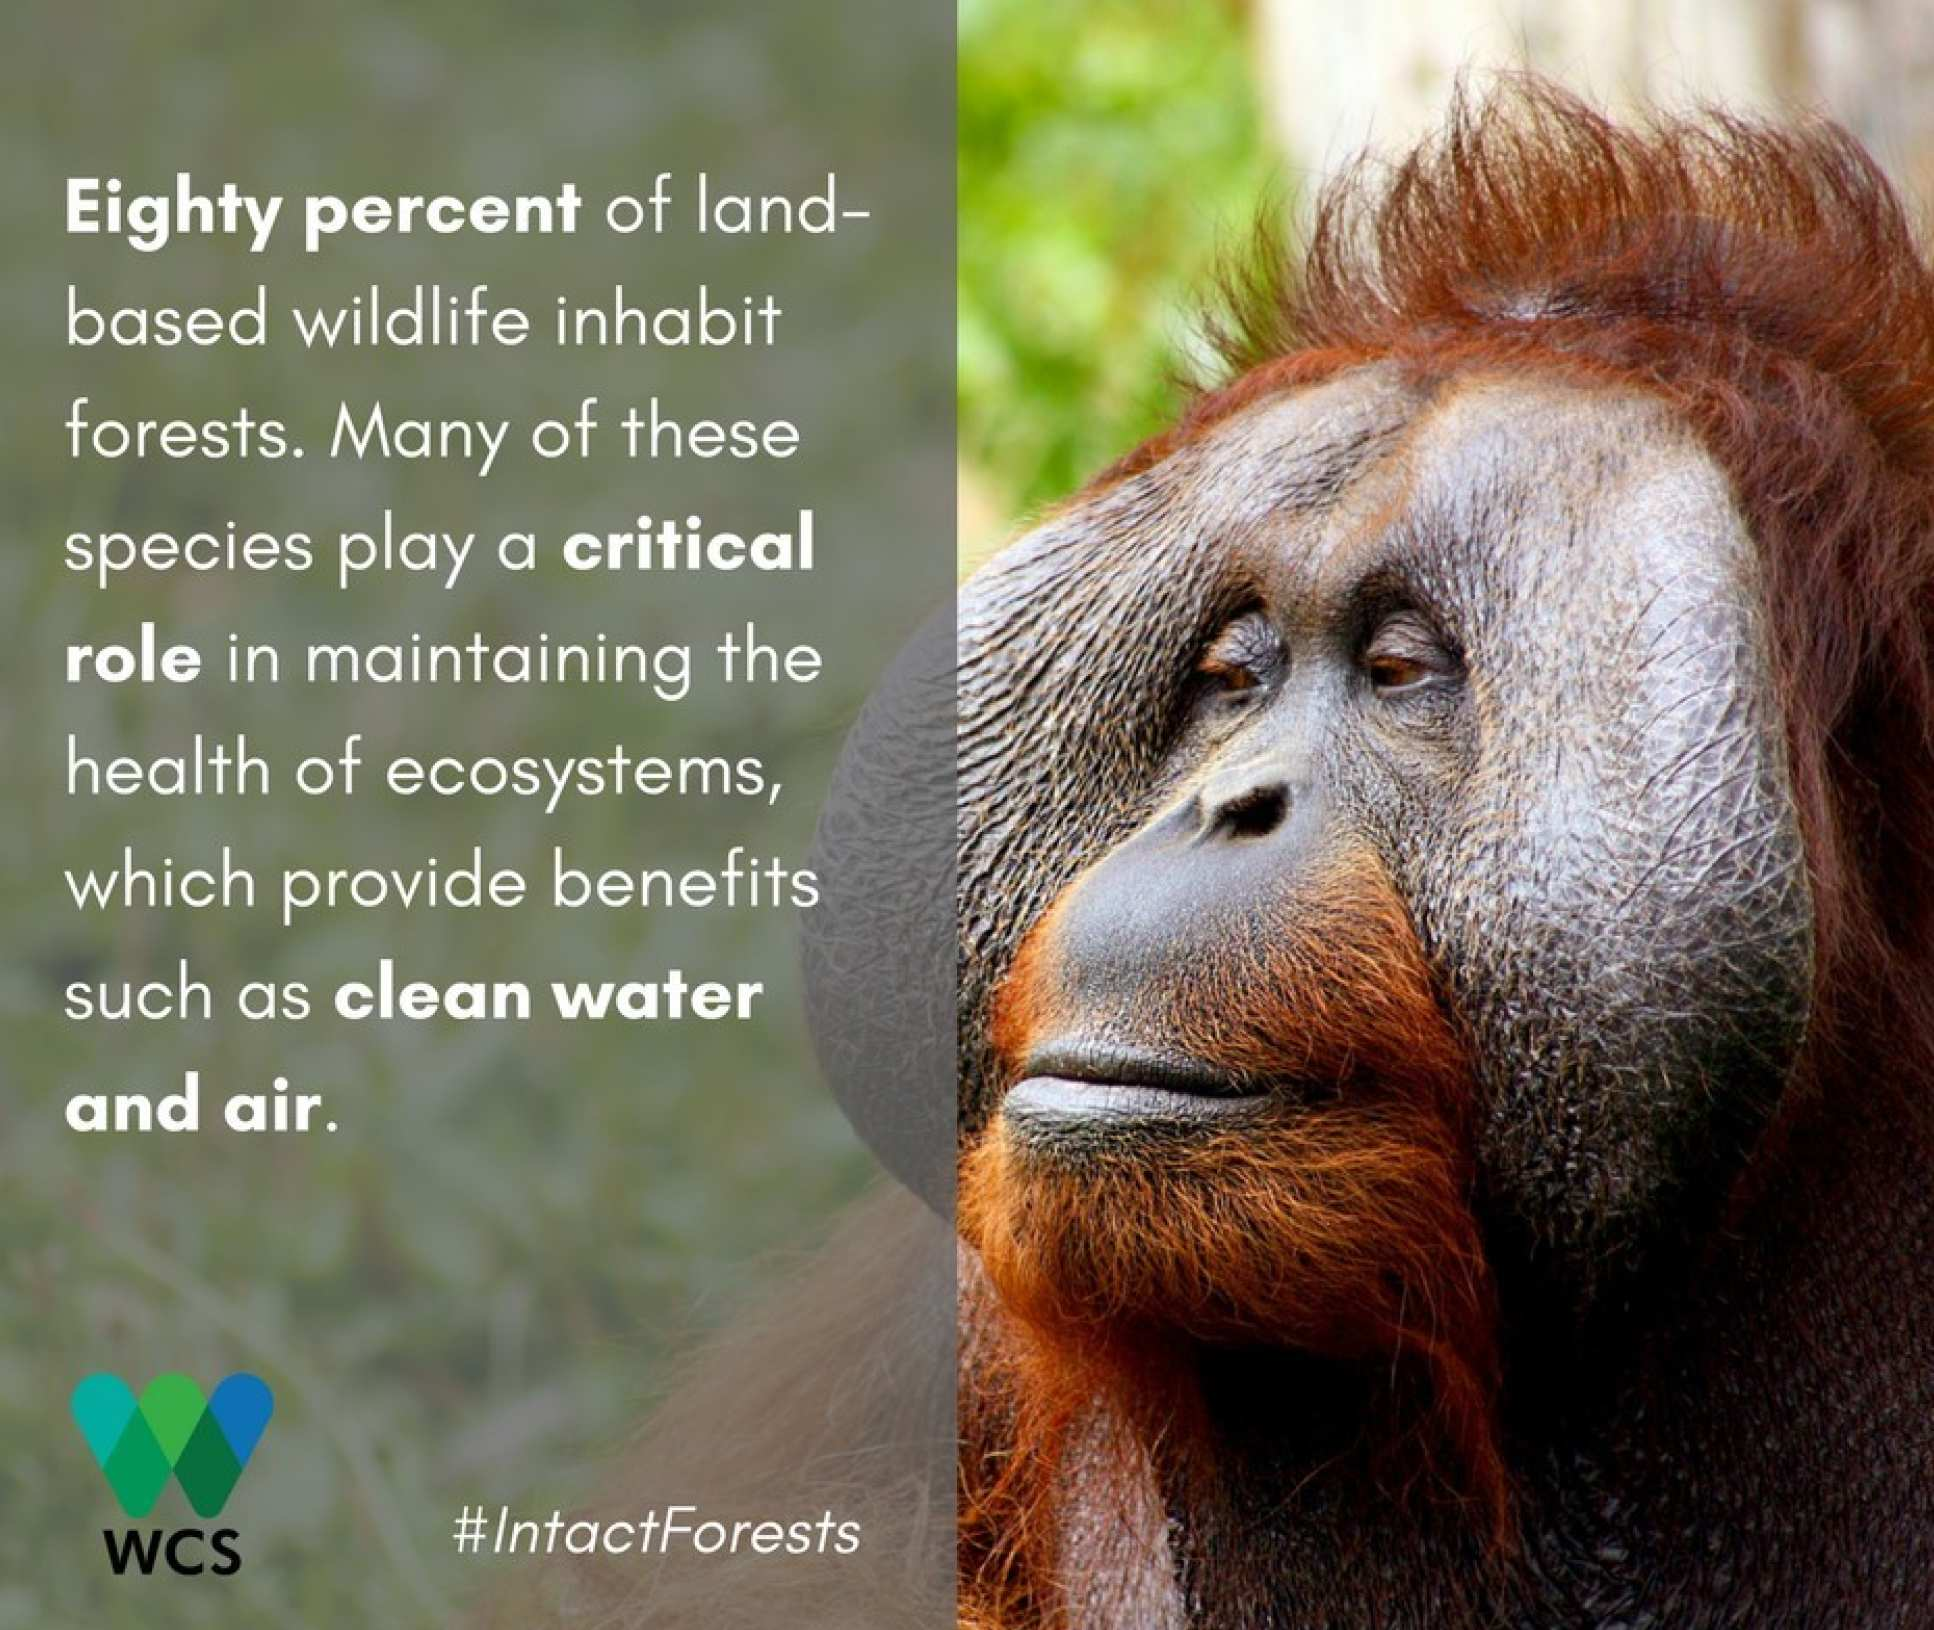 Image of orangutan with caption: Eighty percent of land-based wildlife inhabit forests. Many of these species play a critical role in maintaining the health of ecosystems, which provide benefits such as clean water and air.